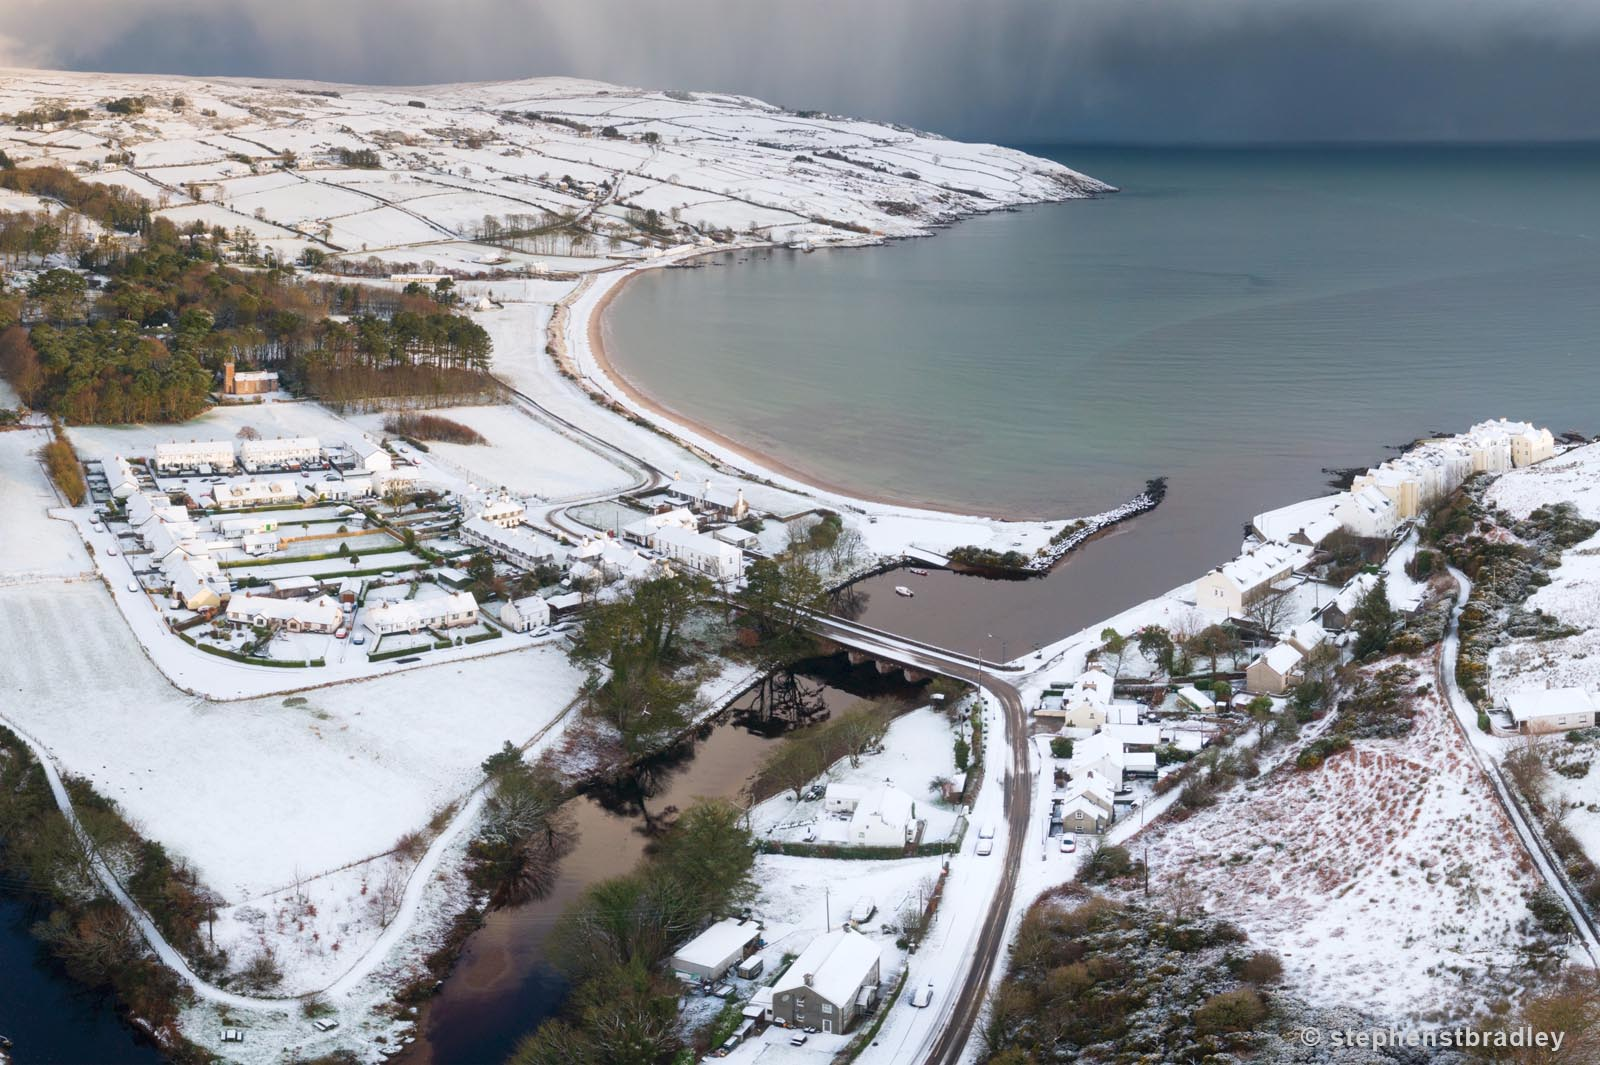 Aerial drone photography and video production services Dublin and Ireland portfolio - Cushendun village under snow in winter, video screenshot 6